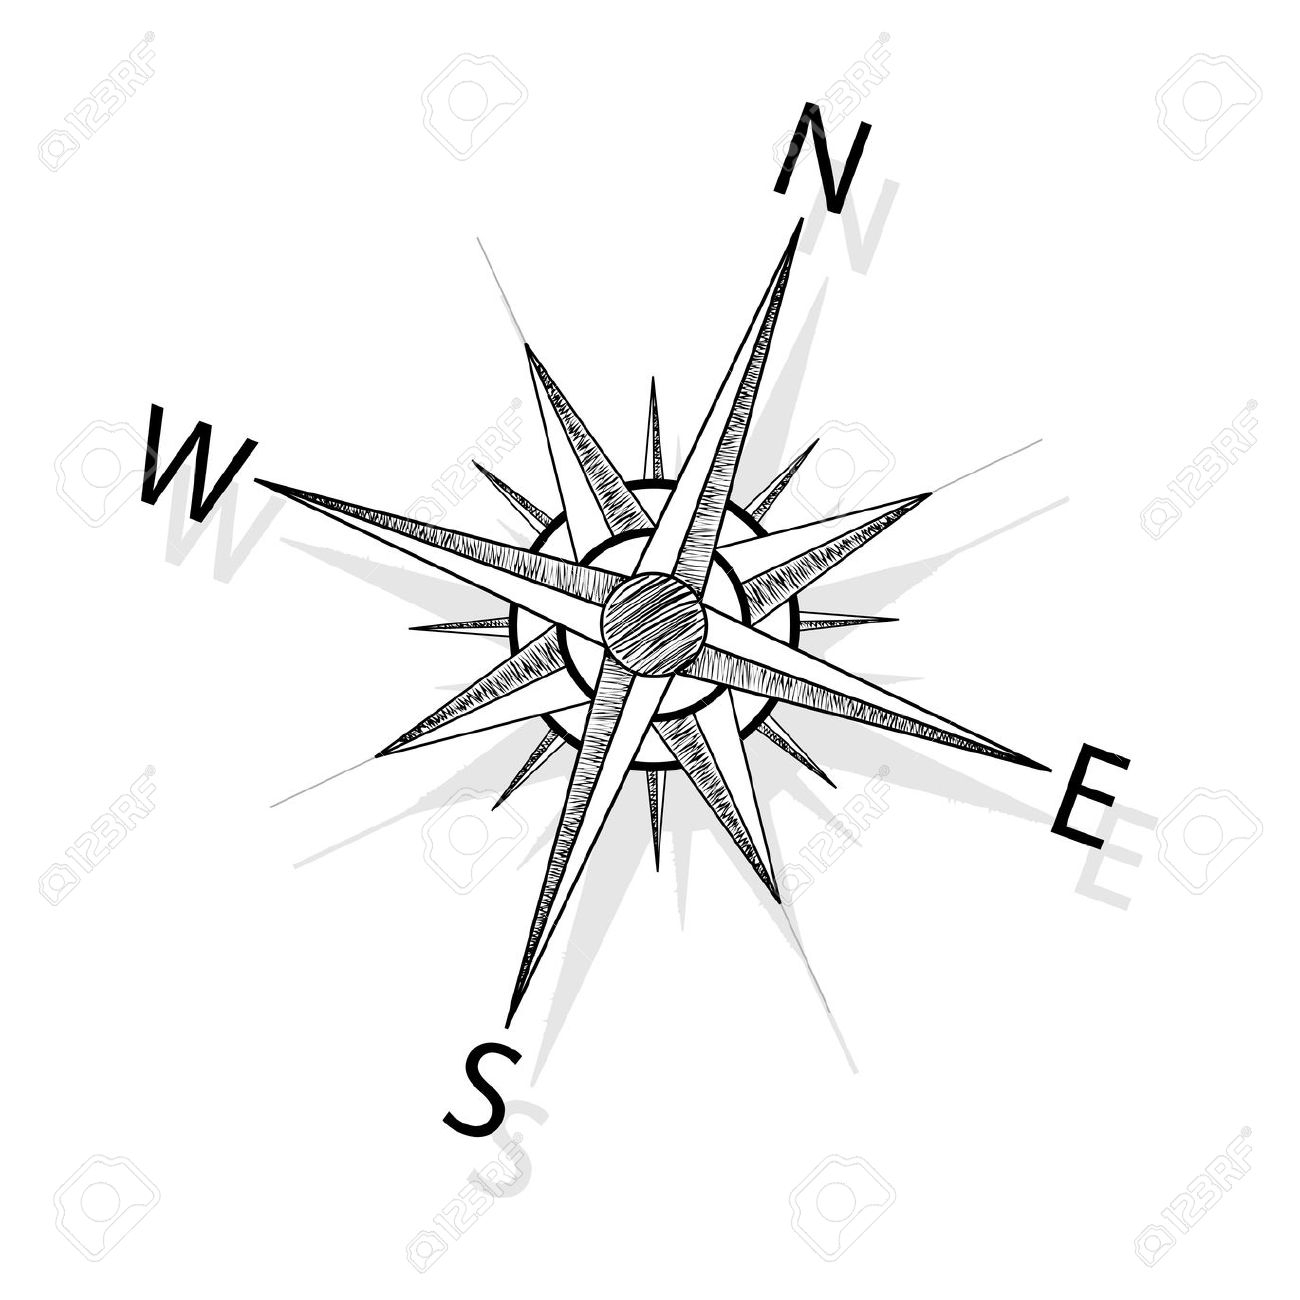 Simple Compass Drawing At Getdrawings